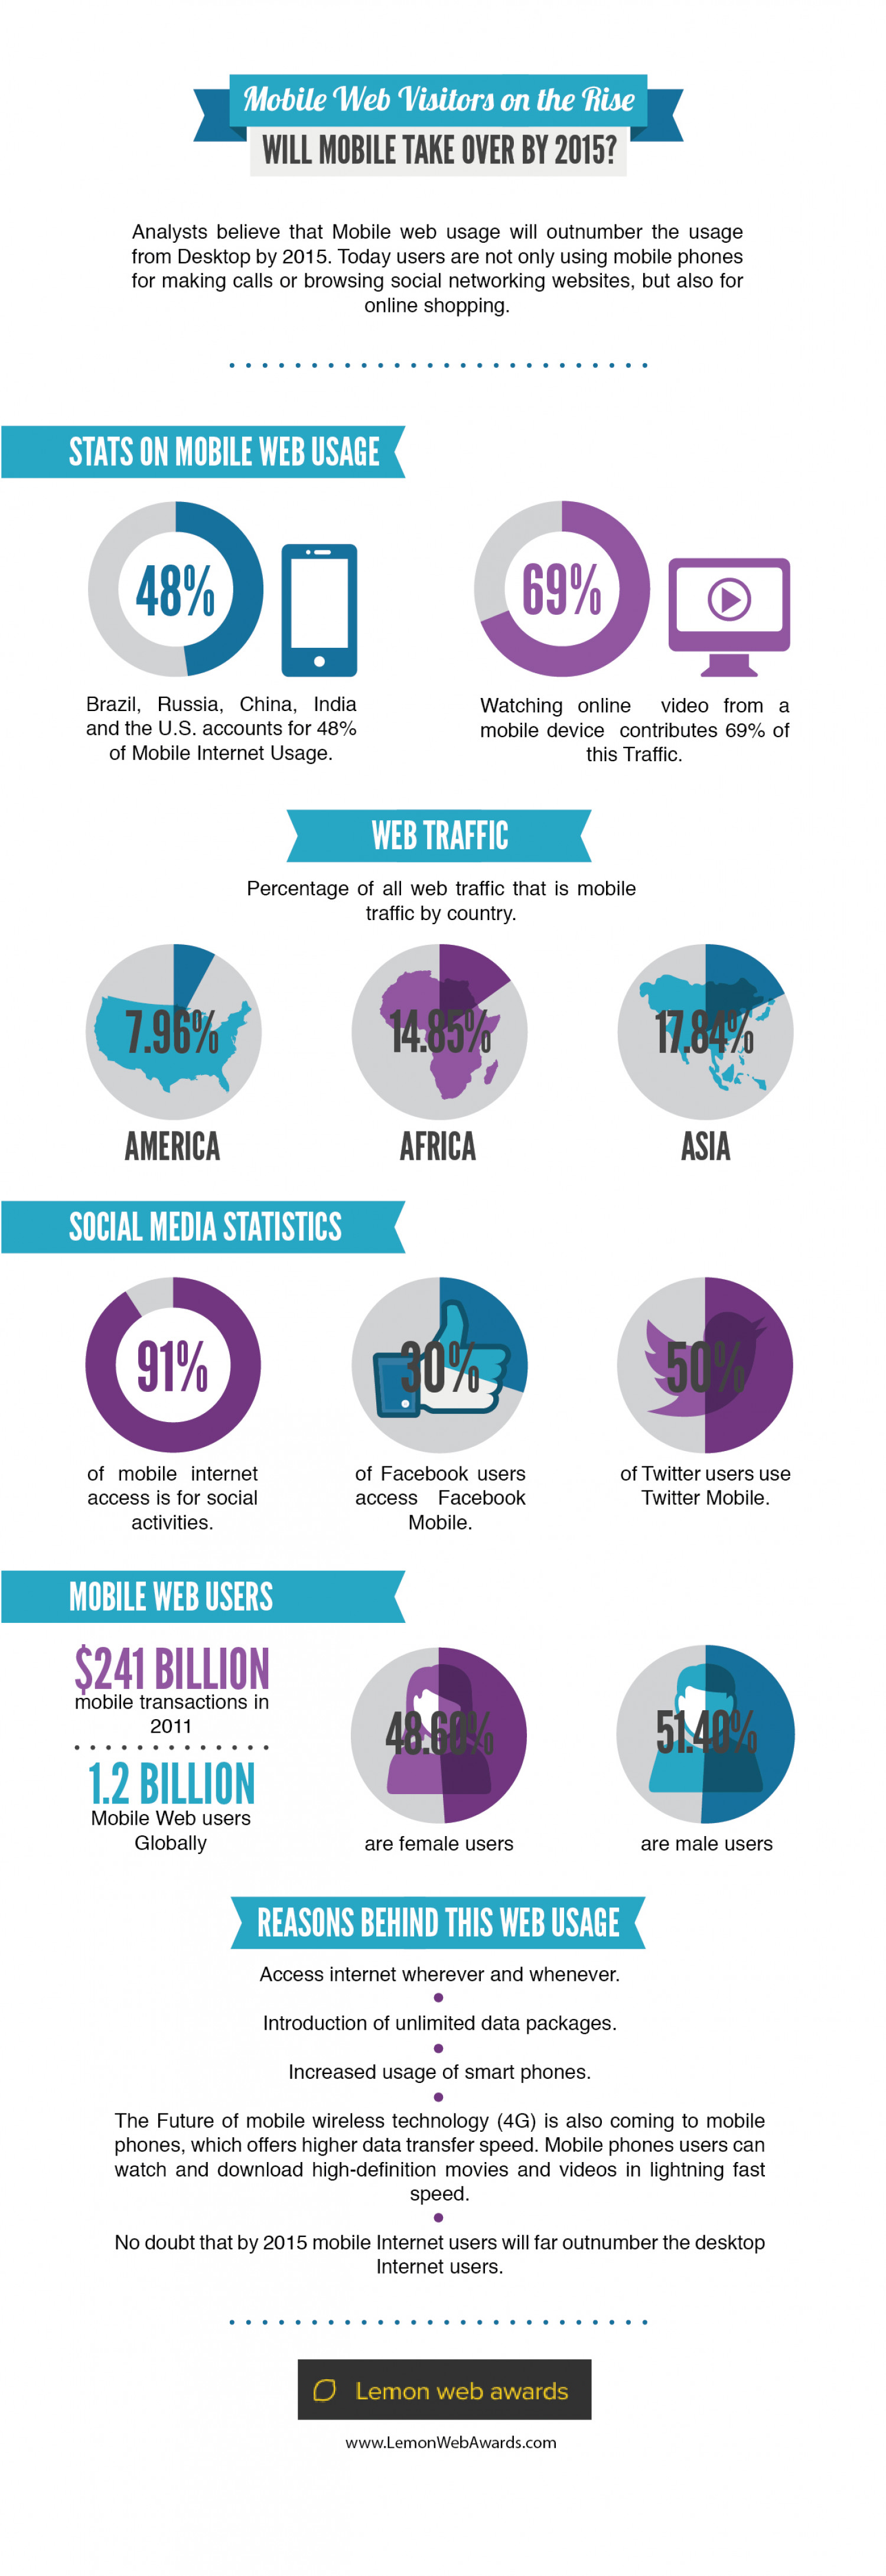 Will mobile take over by 2015? Infographic